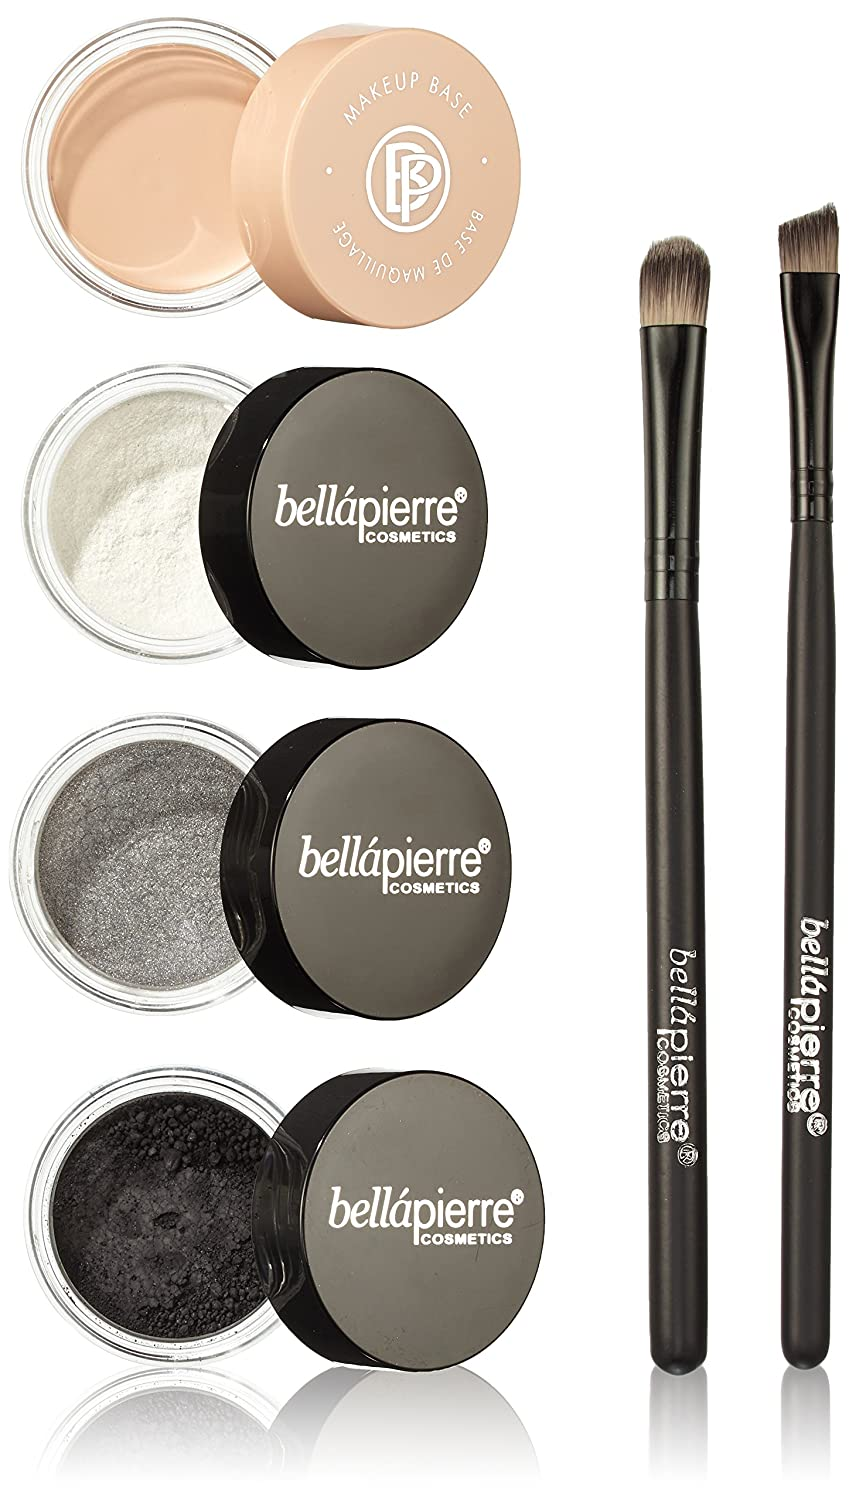 bellapierre get the look kit smokey eyes, 1 Count GTL004